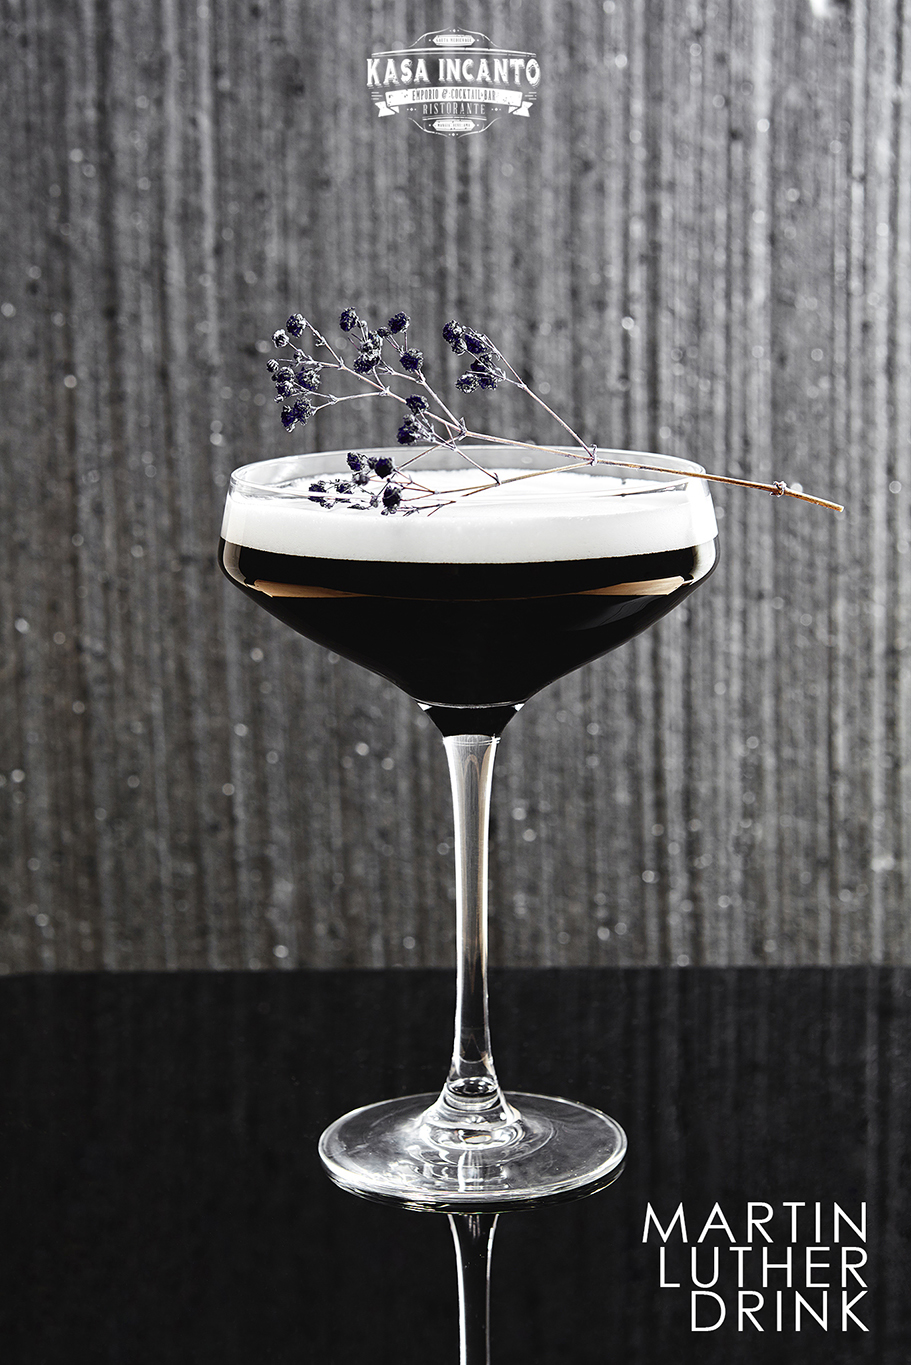 Martin_Luther_drink_fabio_camboni_mixology_bartender